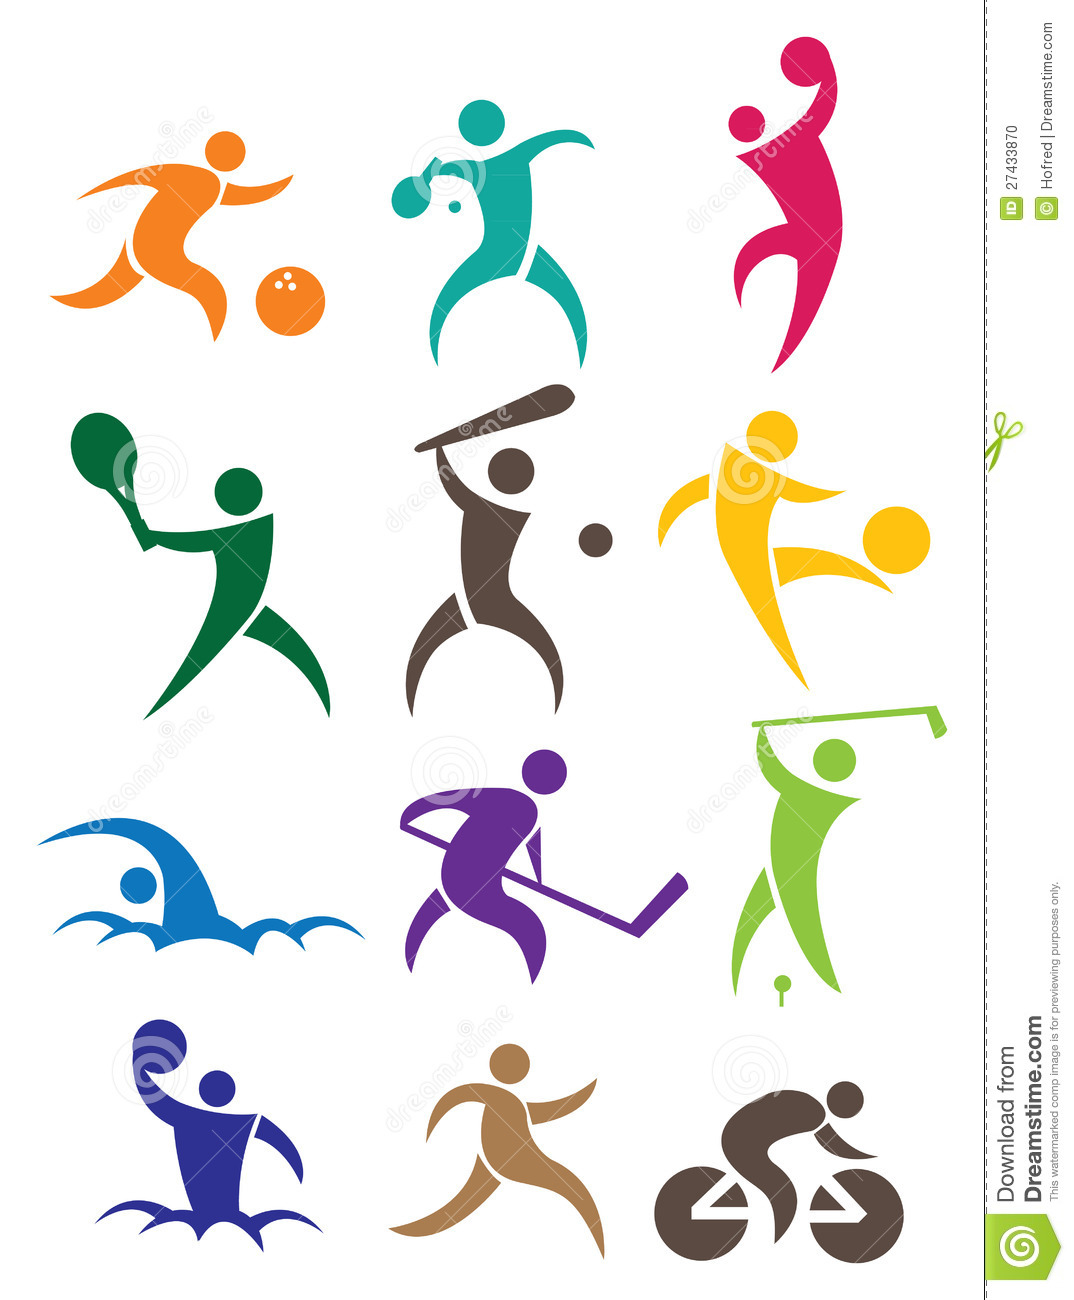 Sports: Sports Icon Stock Vector. Image Of Fitness, Baseball